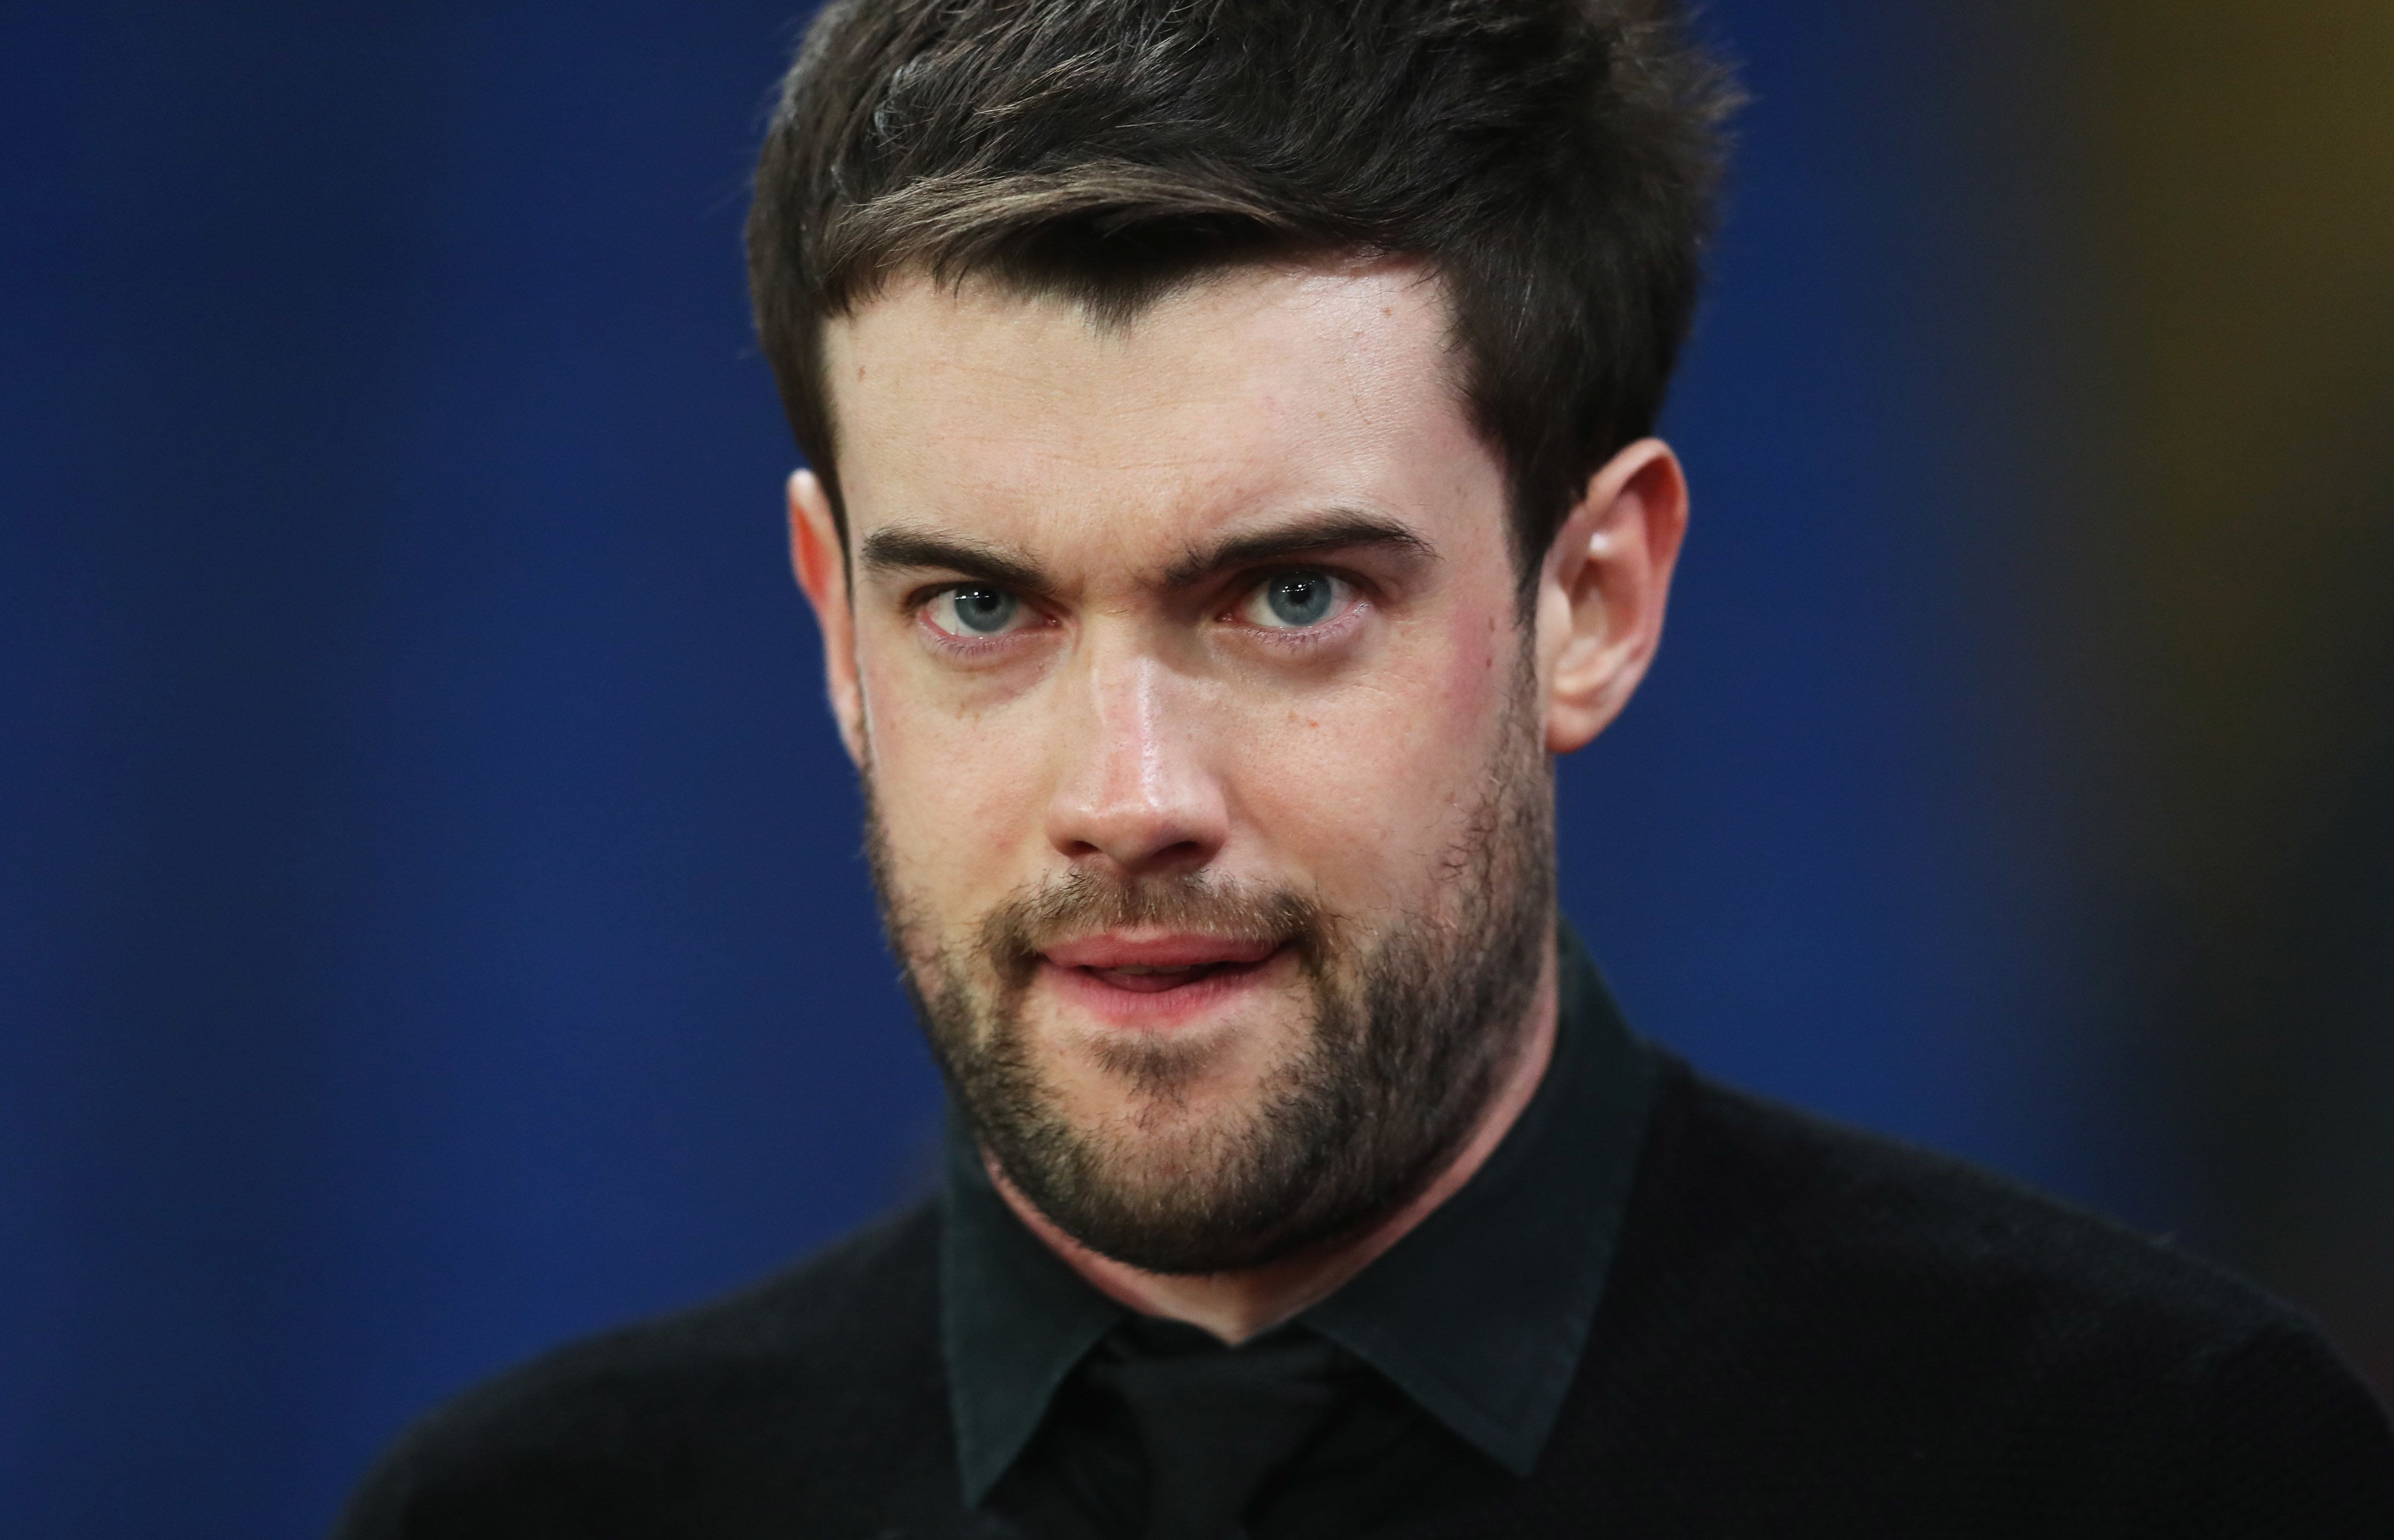 Disney Reportedly Casts Jack Whitehall In Gay Role, Sparking Backlash